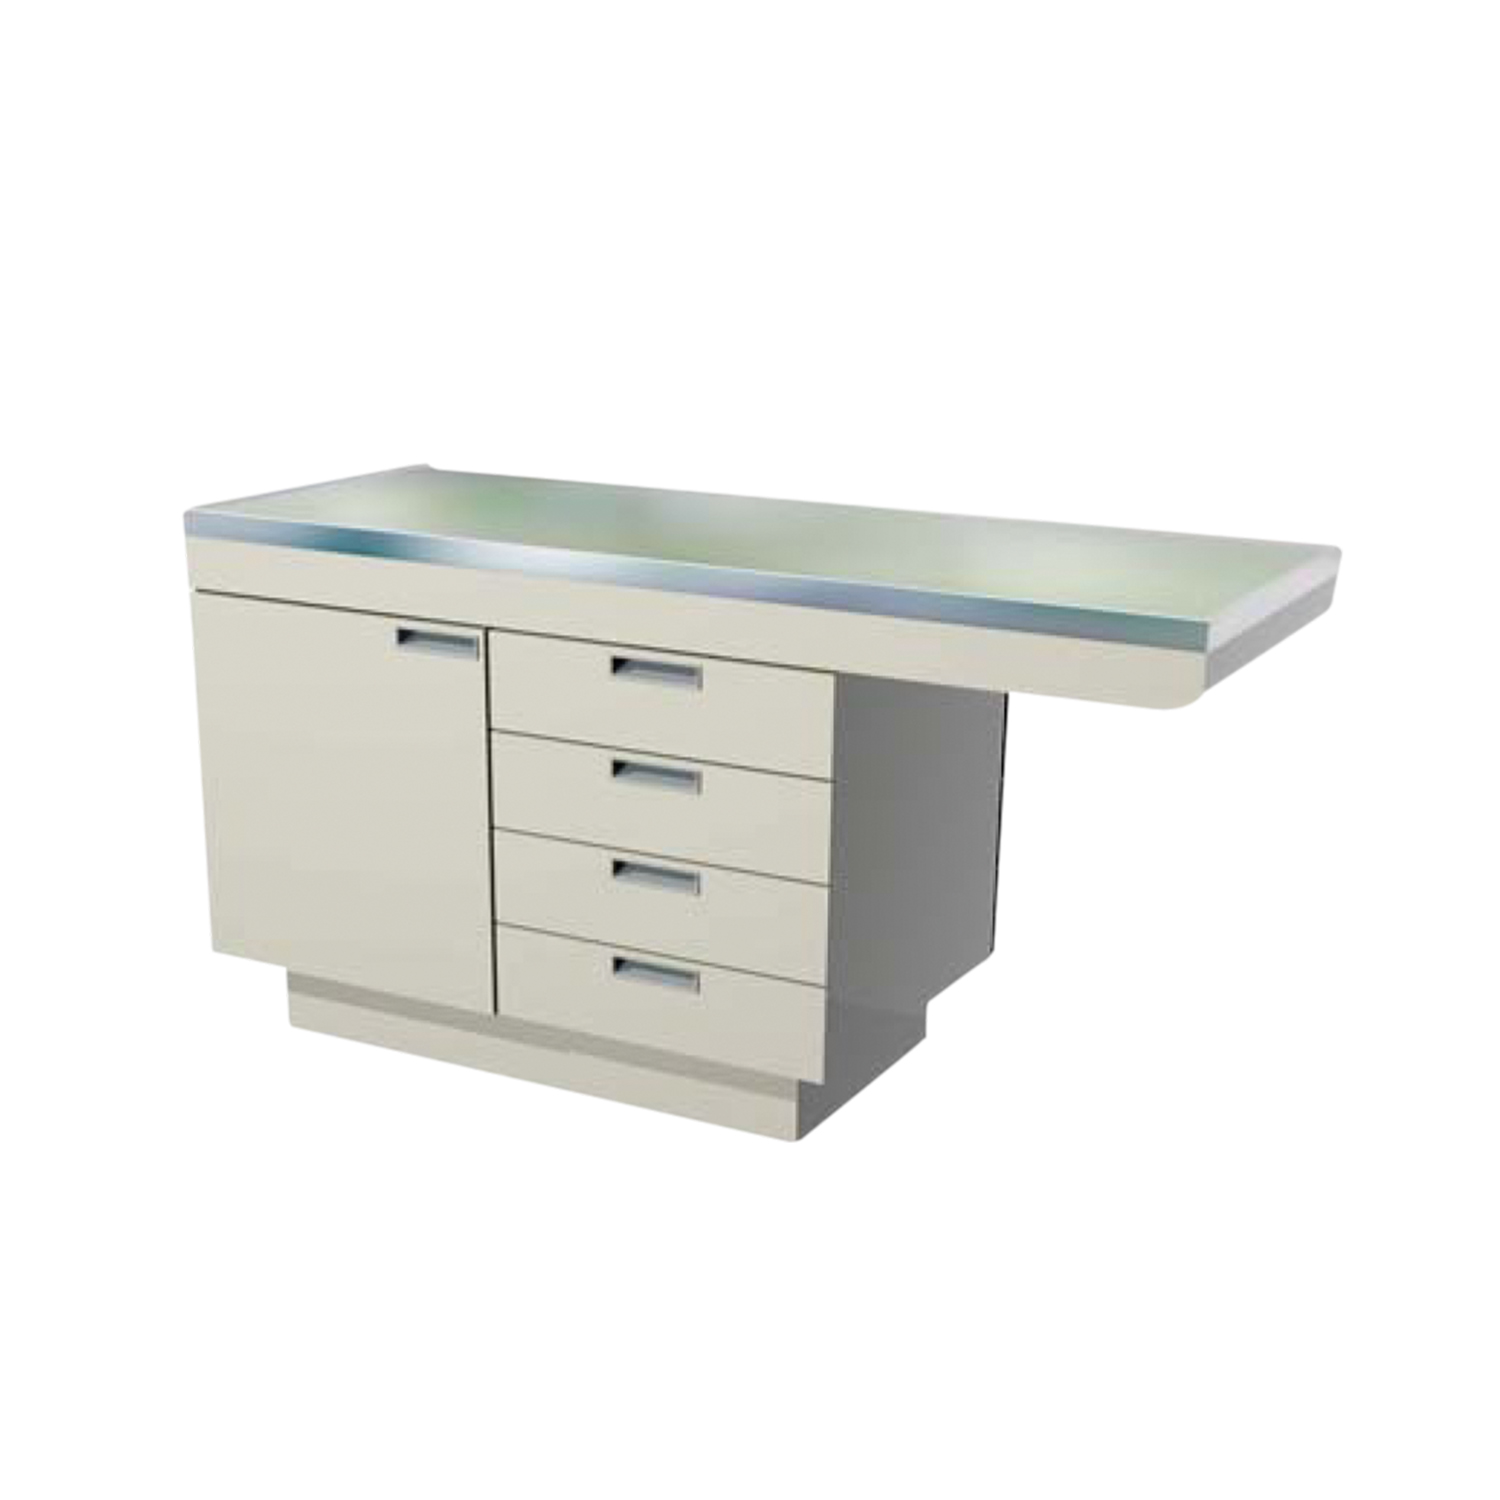 Millwork Cabinet Style Examination Table with Knee Space